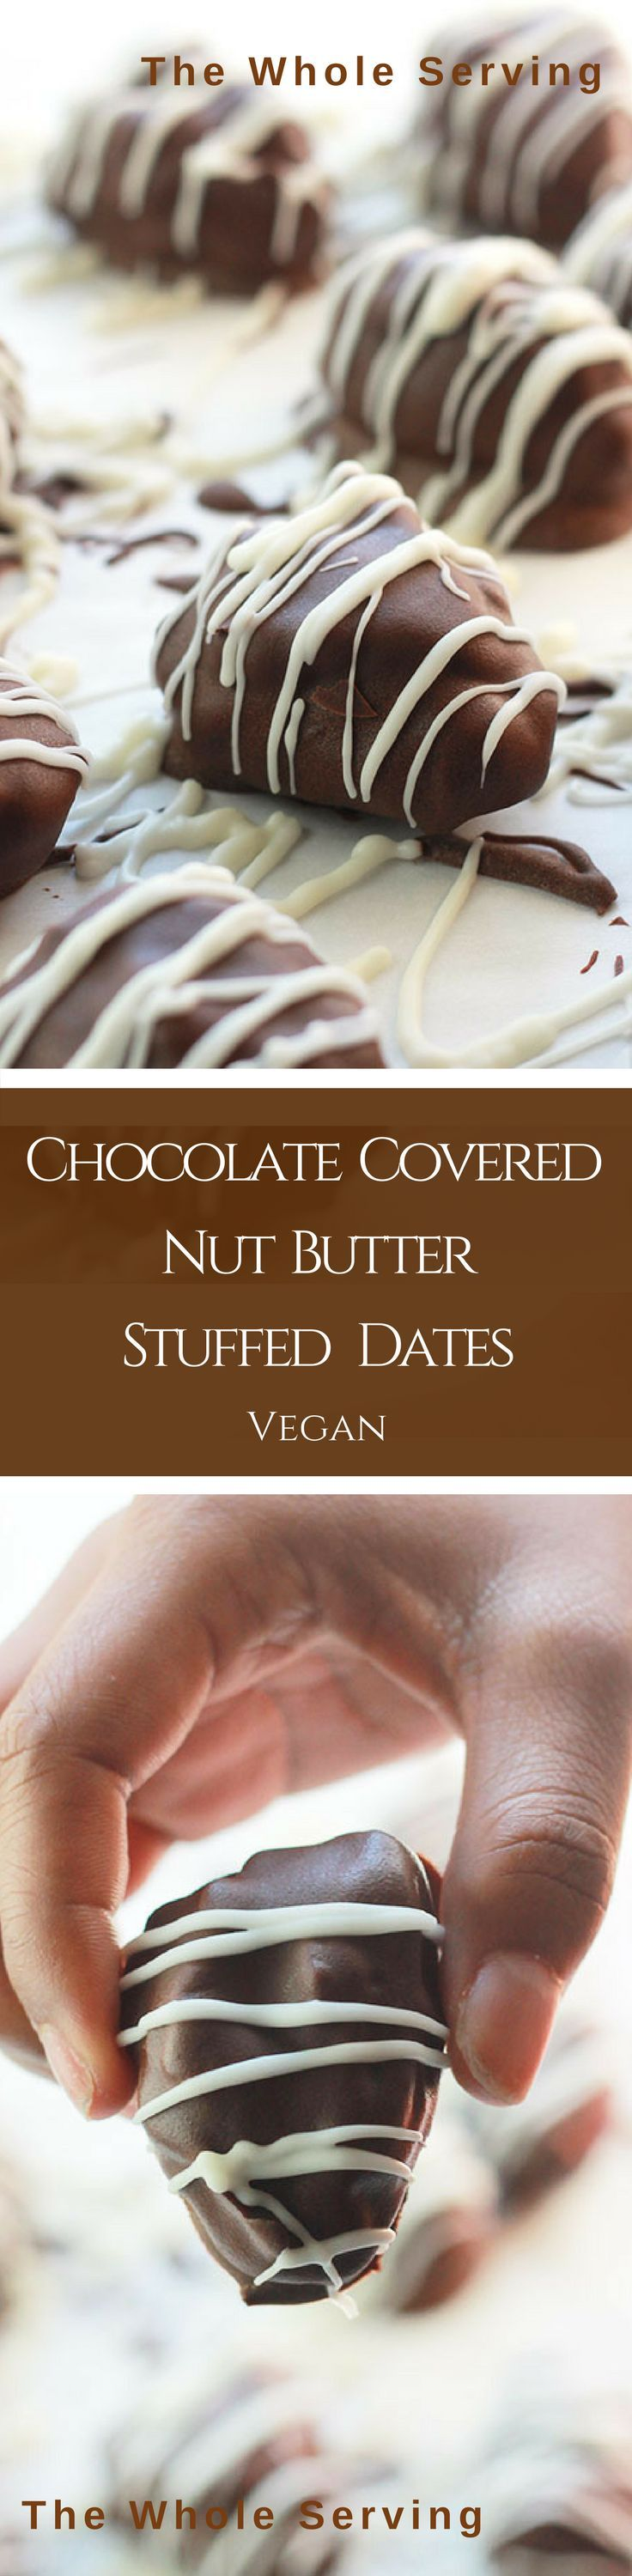 Chocolate Covered Nut Butter Stuffed Dates - Dates stuffed with nut butter, dipped in chocolate and drizzled with smooth, creamy vegan white chocolate. Pure Deliciousiness.